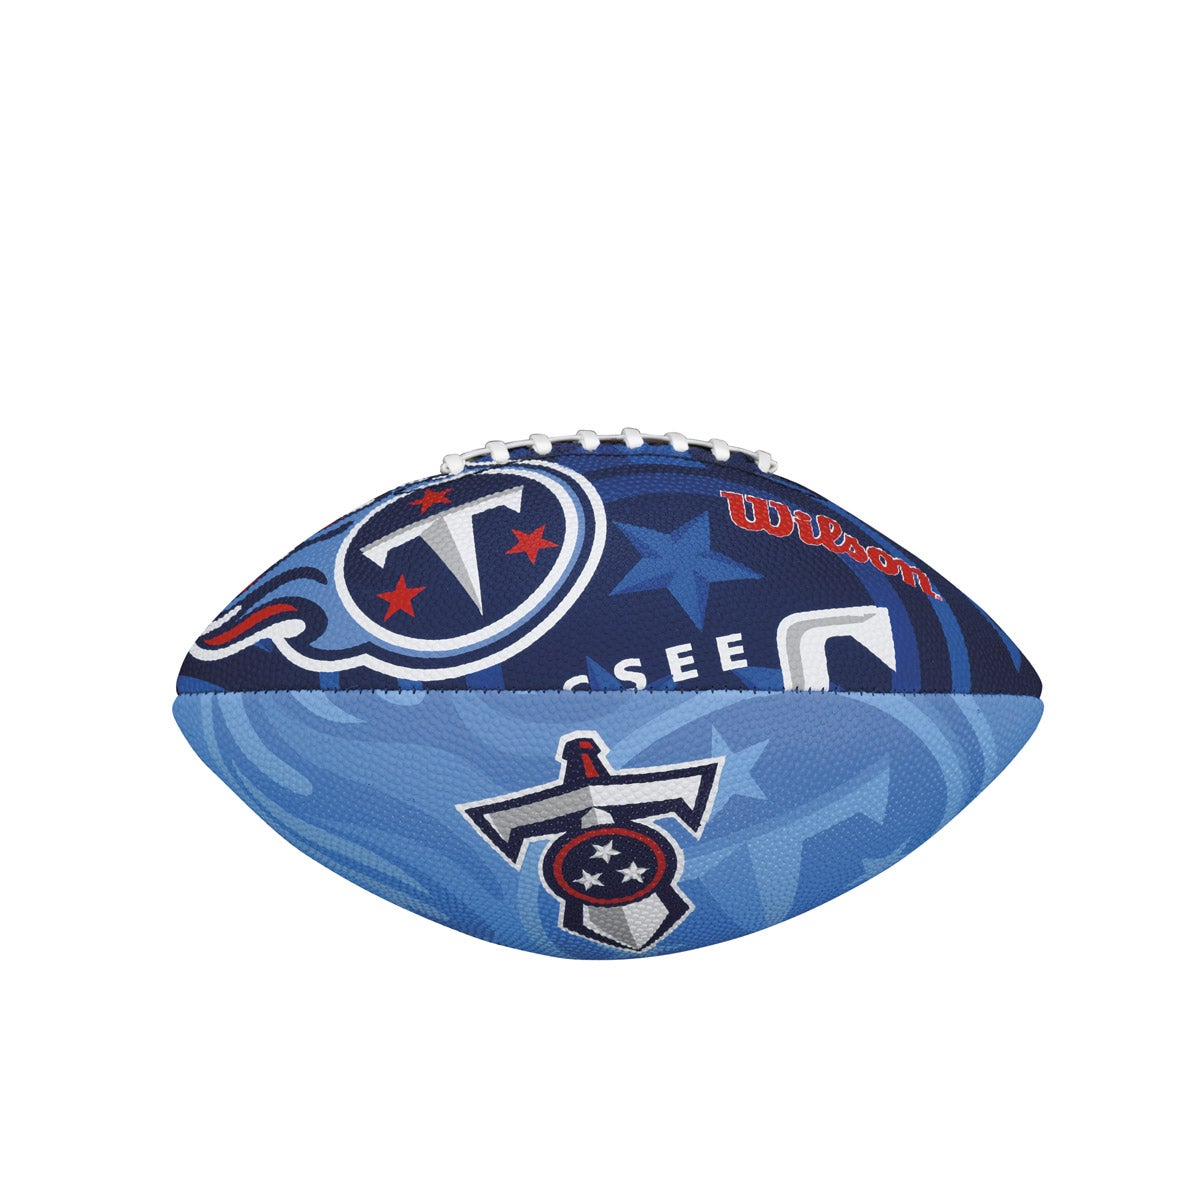 NFL TEAM LOGO JUNIOR SIZE FOOTBALL - TENNESSEE TITANS